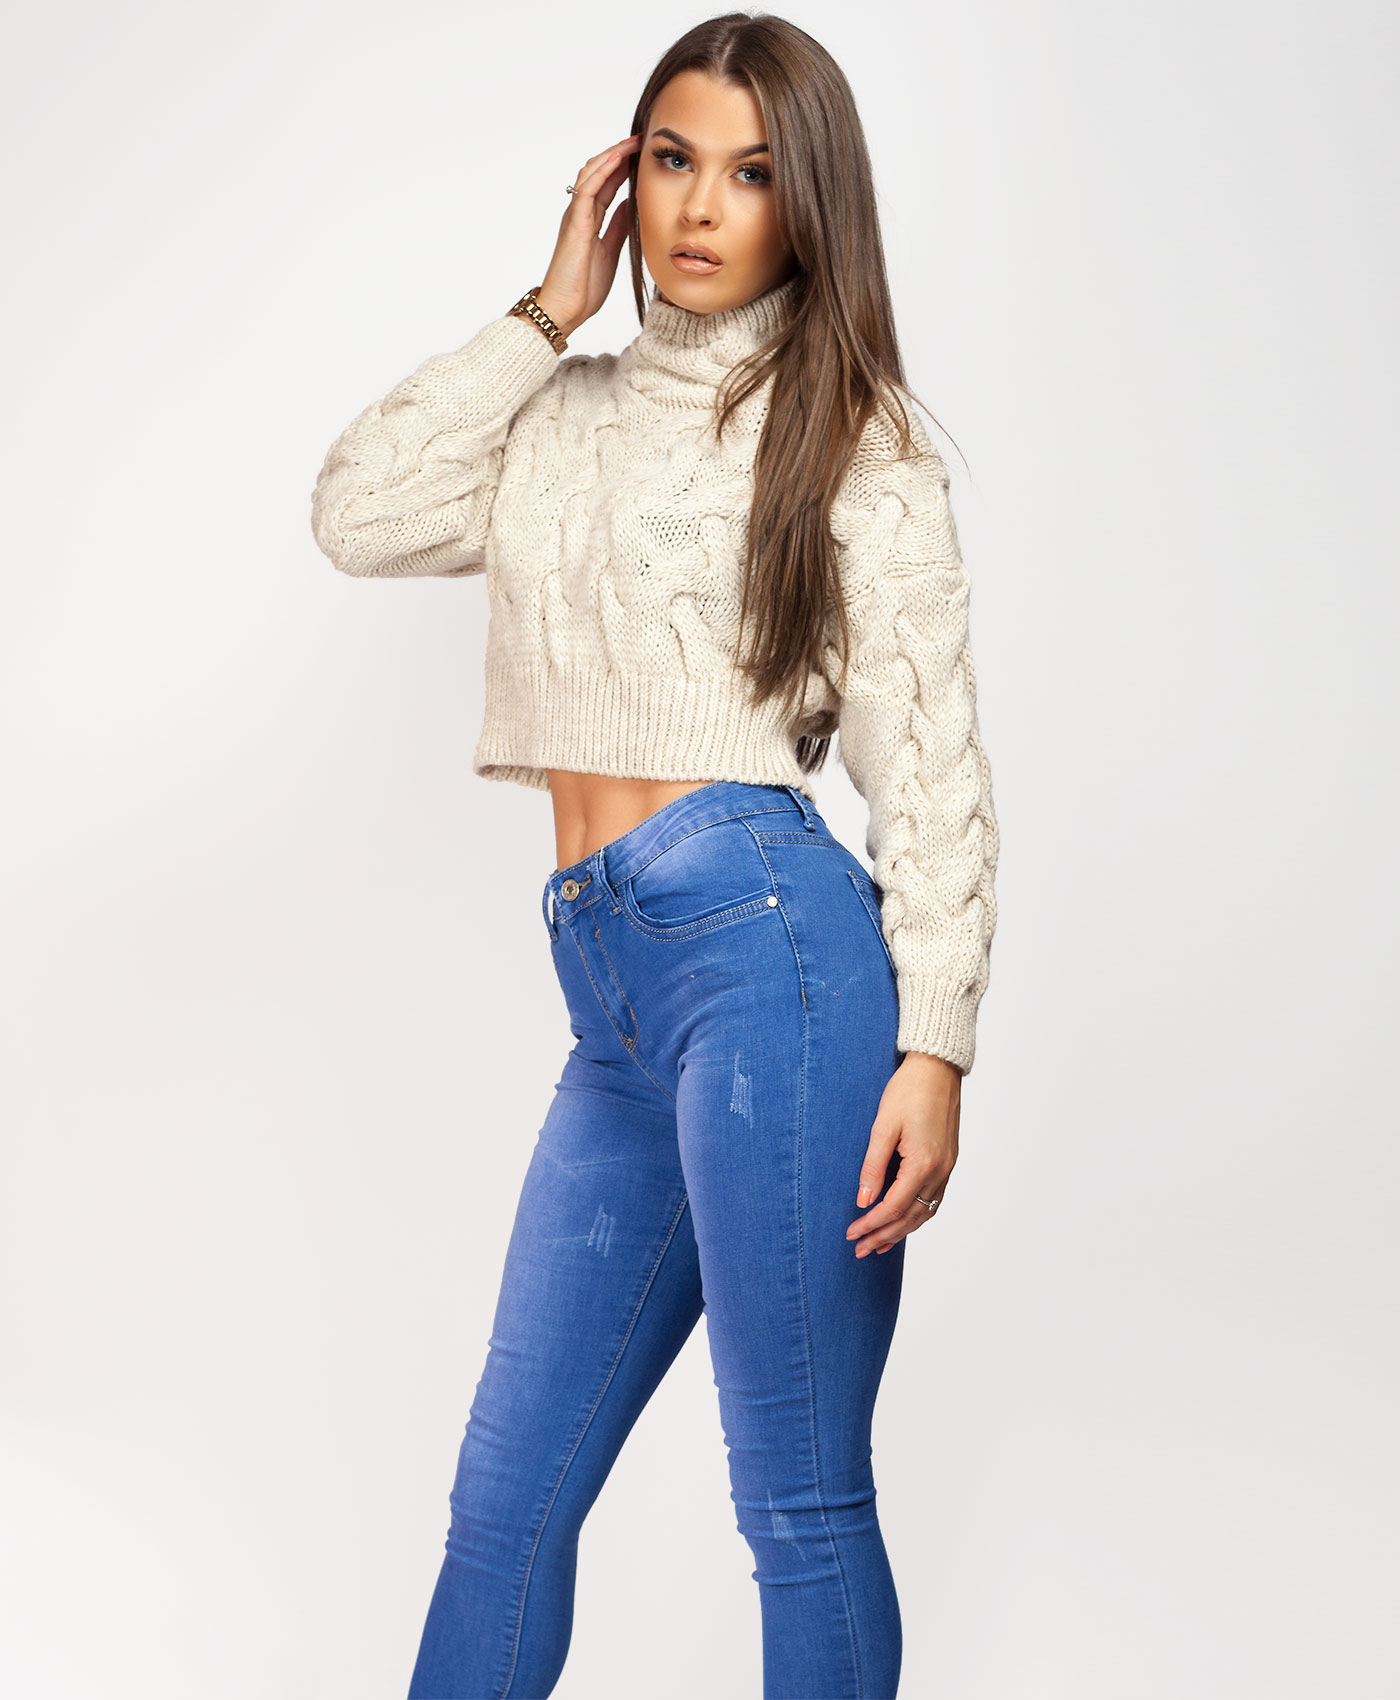 Womens-Ladies-Cable-Knitted-High-Neck-Cropped-Top-Pullover-Sweater-Chunky-Jumper thumbnail 19